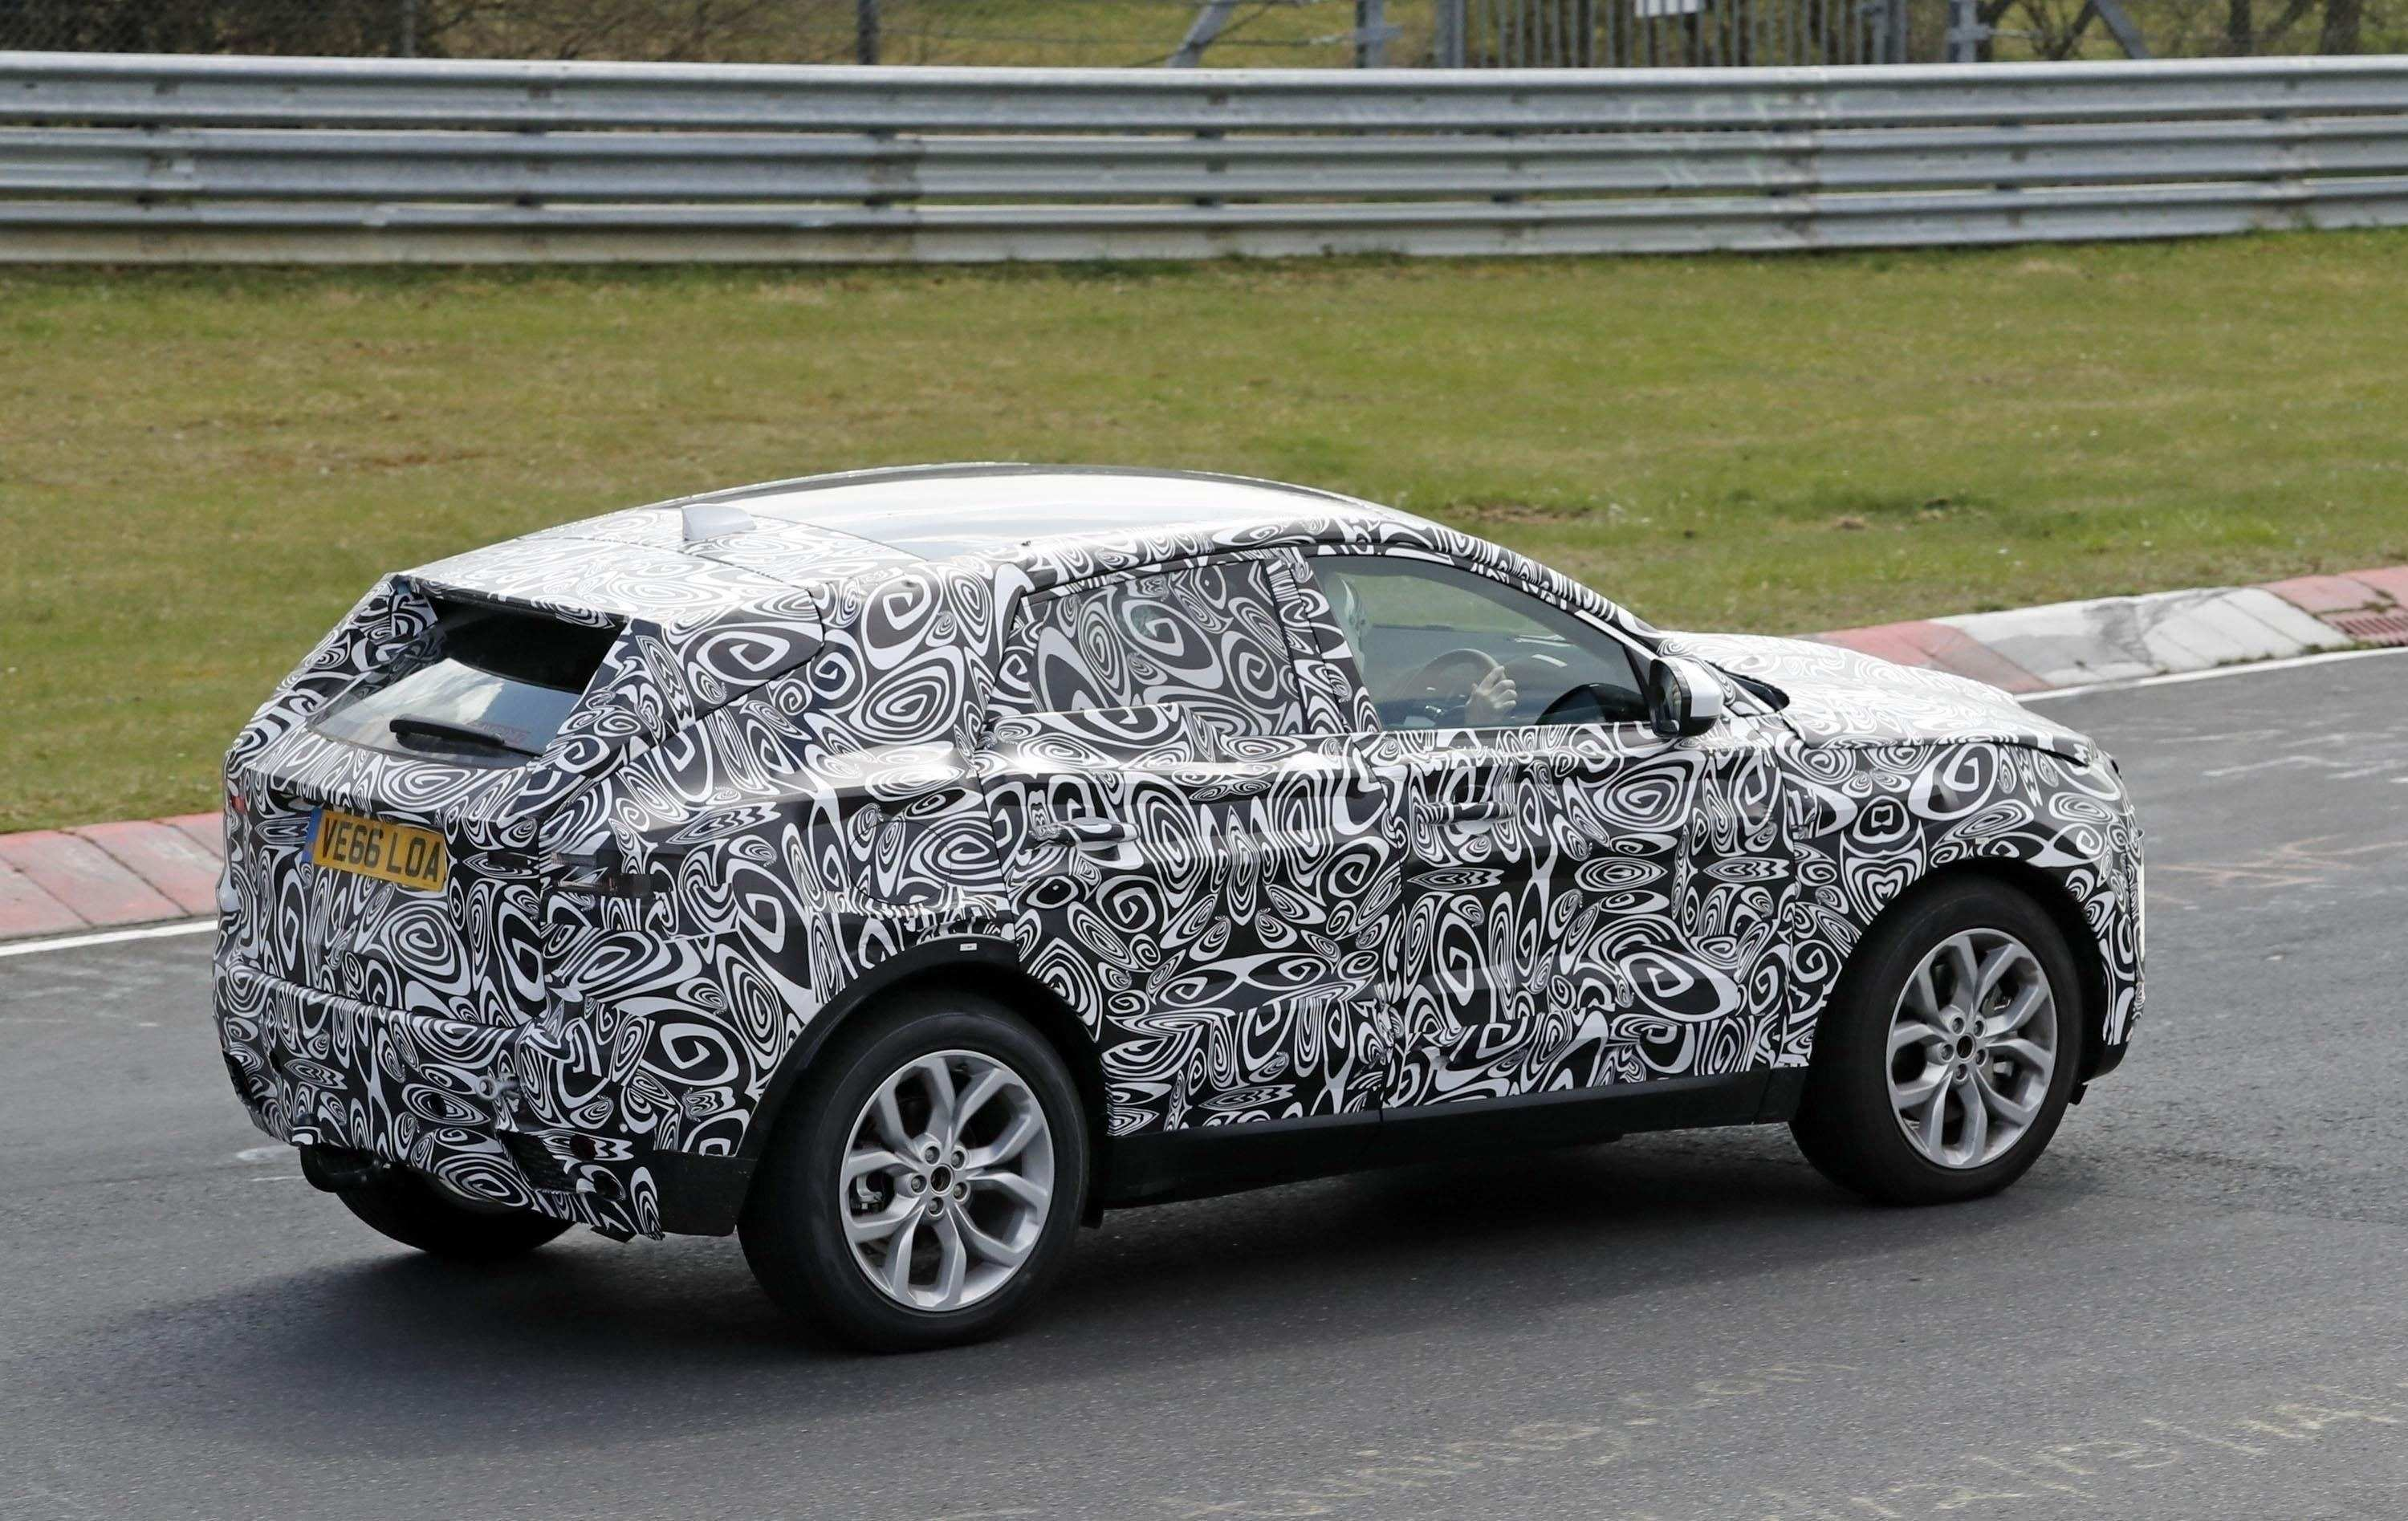 55 A 2019 Jaguar Xq Crossover Exterior And Interior